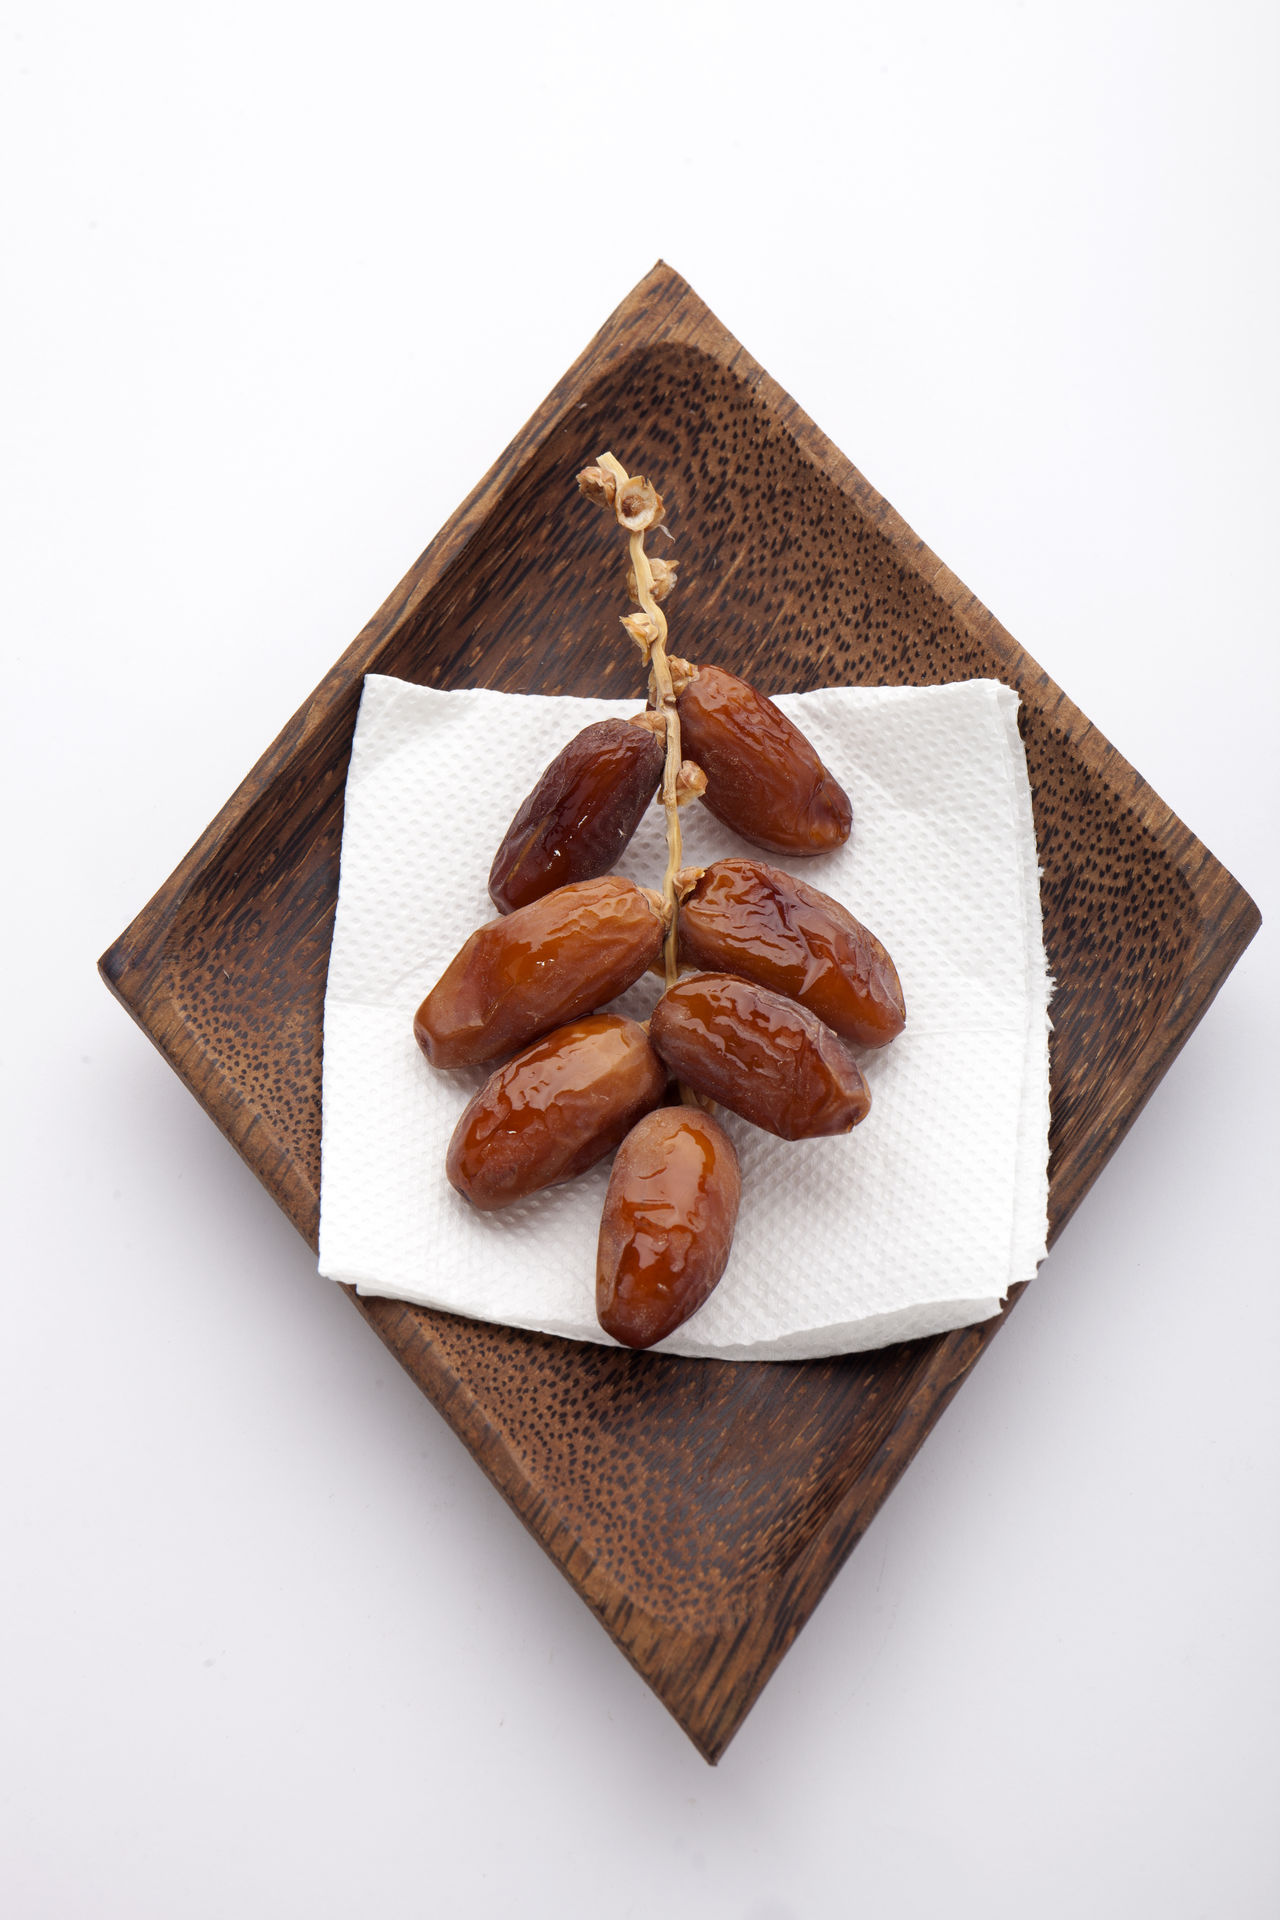 Date Fruit Close-up Color Image Date Fruit Day Dried Fruit Focus On Foreground Food Food And Drink Freshness Fruit High Angle View Indoors  Ingredient No People Photography Ready-to-eat Still Life Studio Shot Vertical White Background